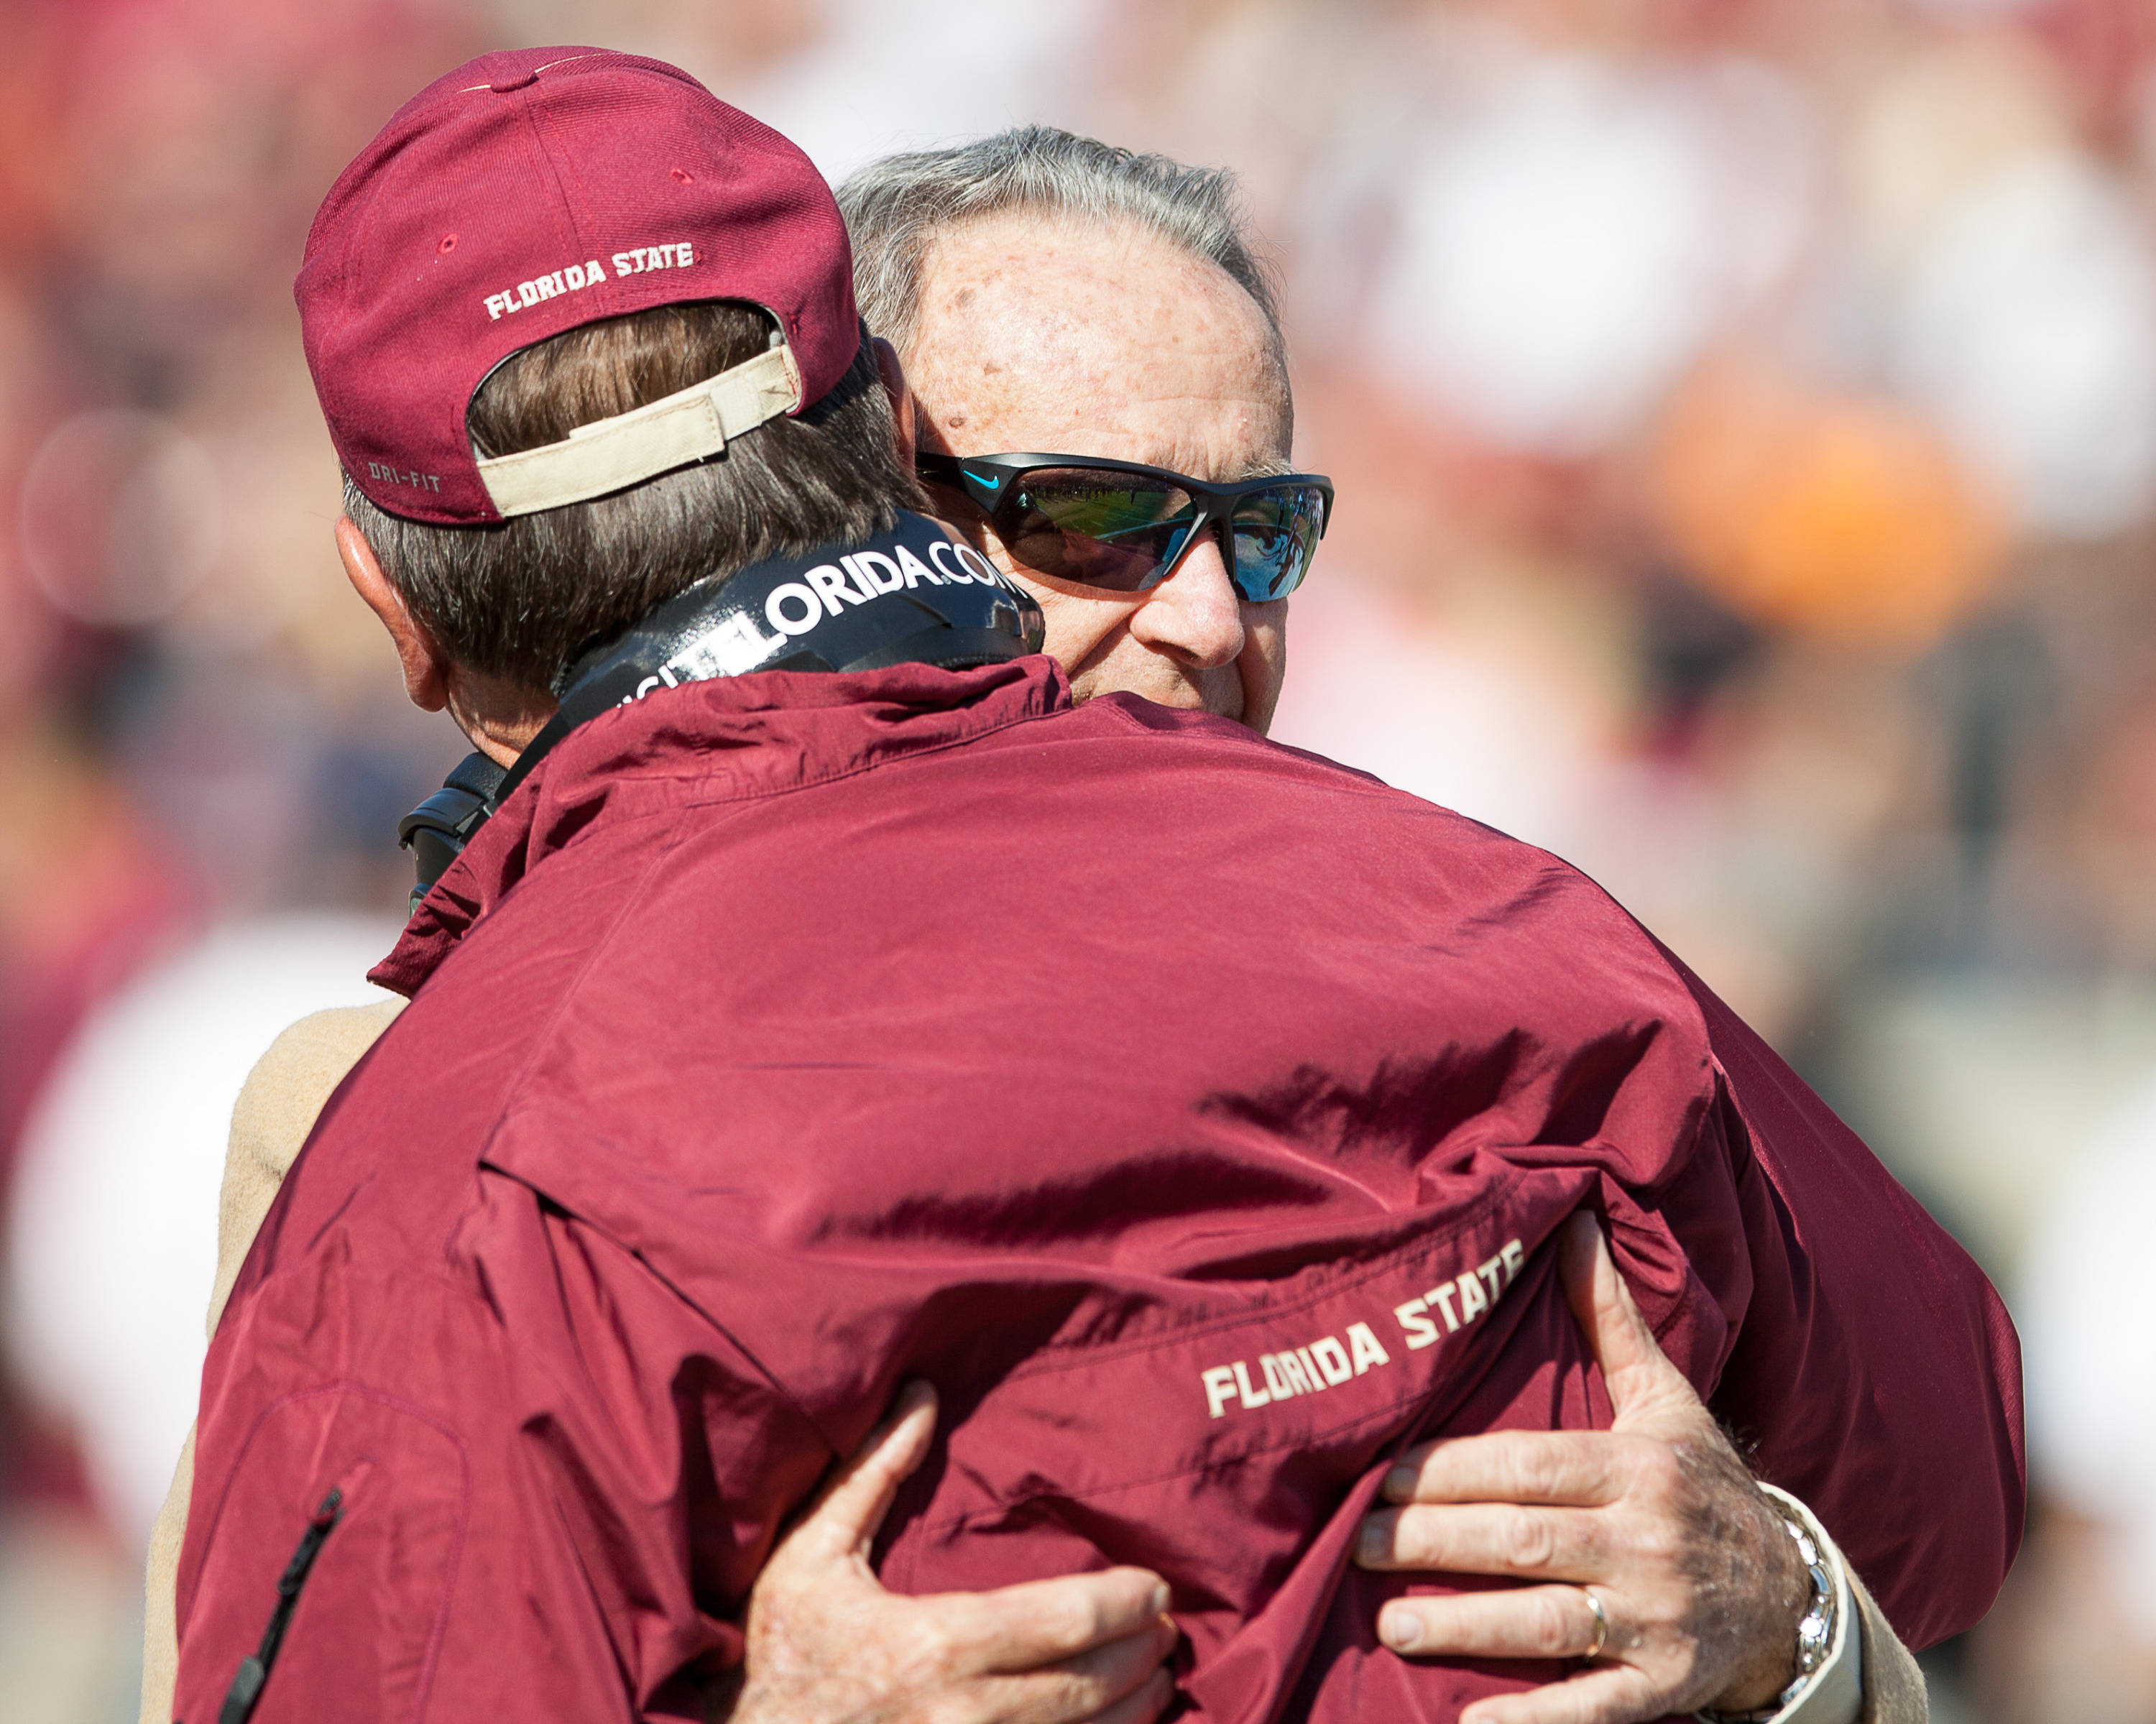 Bobby Bowden hugs Jimbo Fisher before FSU Football's 49-17 win over NC State on Saturday, October 26, 2013 in Tallahassee, Fla. Photo by Michael Schwarz.